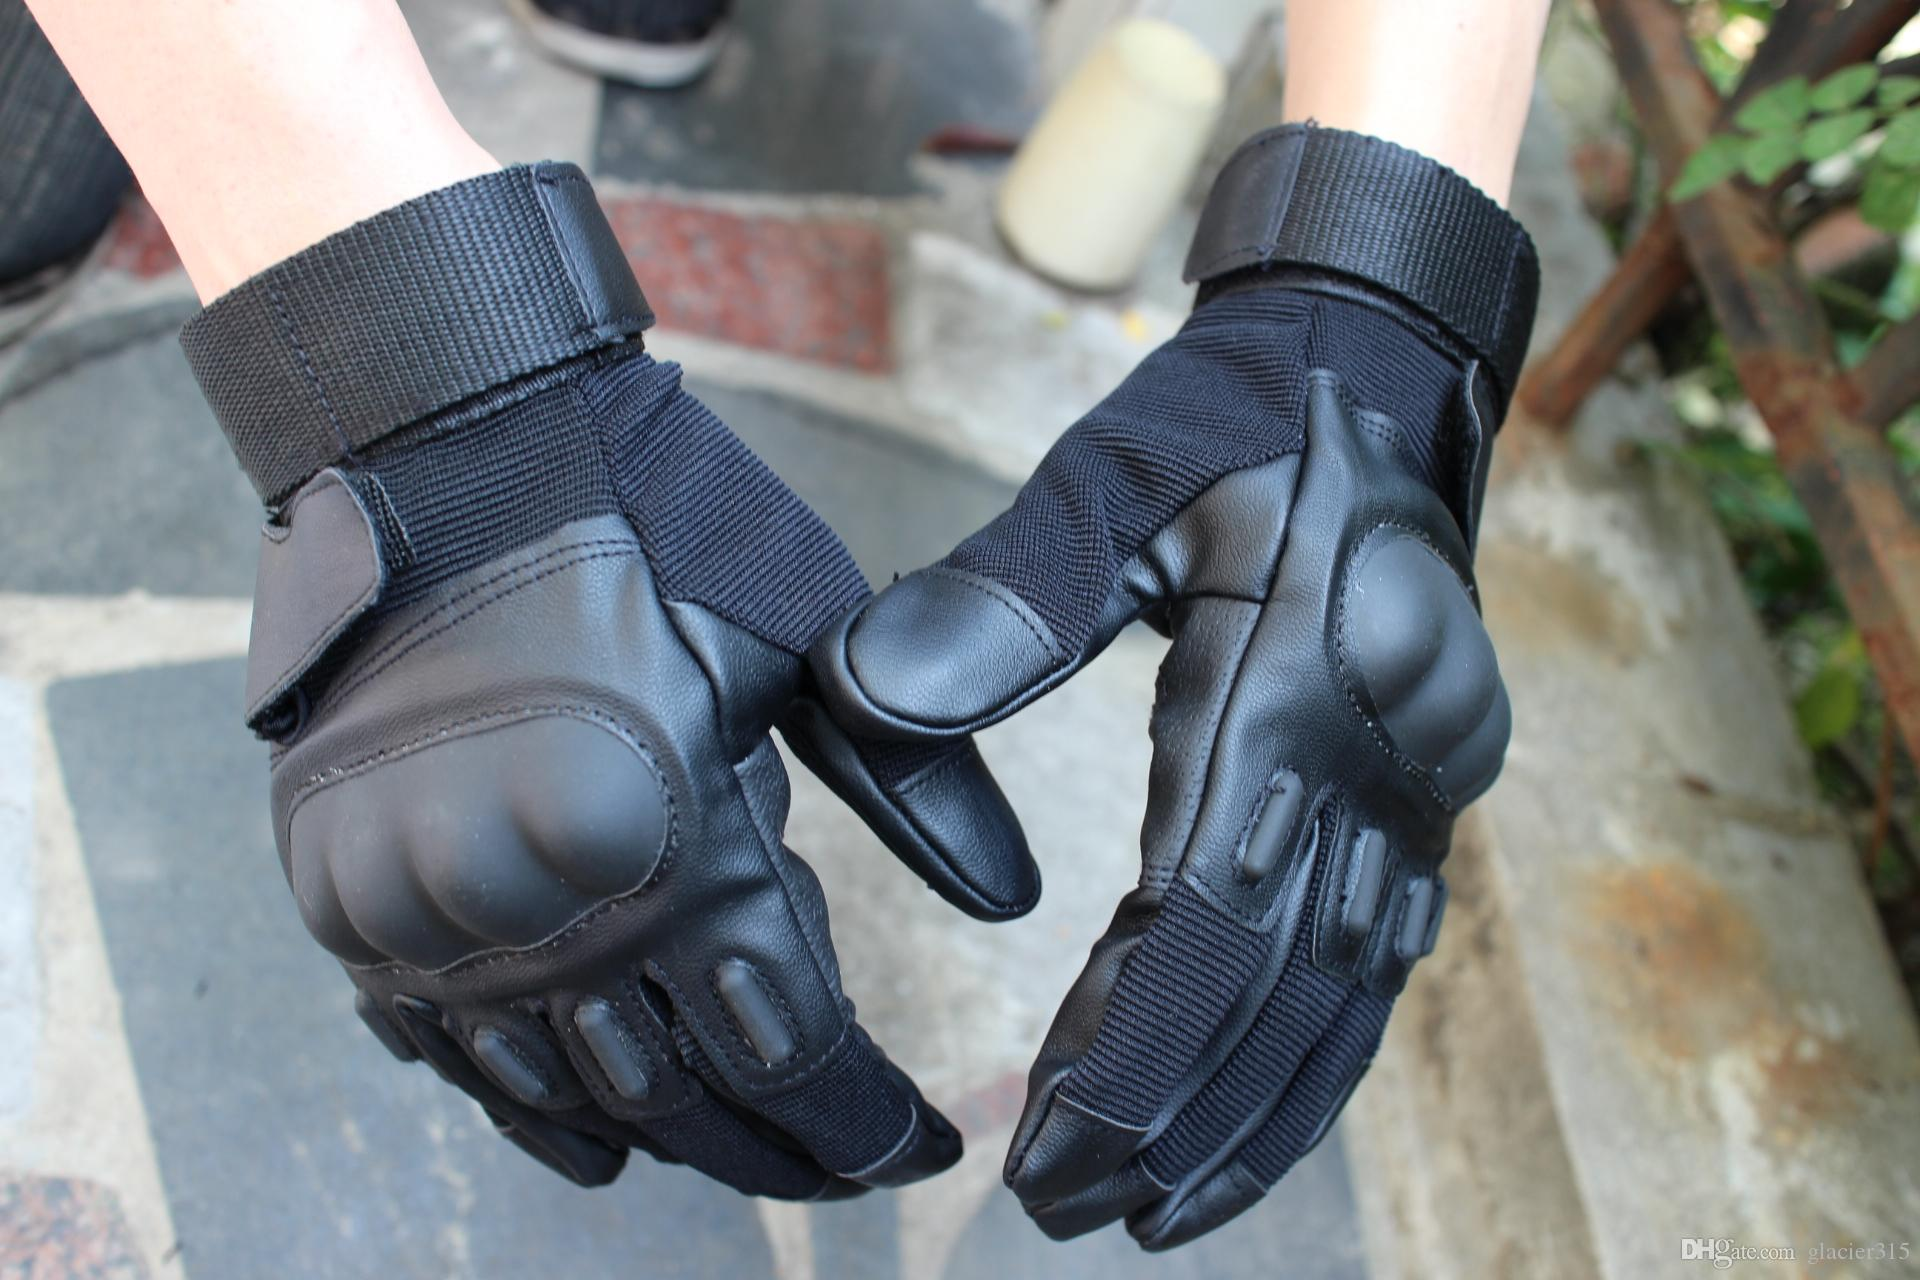 Free shipping new sale top quality brand glove Full finger Tactical Shooting Military Cycling hunting Camping Sport Outdoor Game Gloves